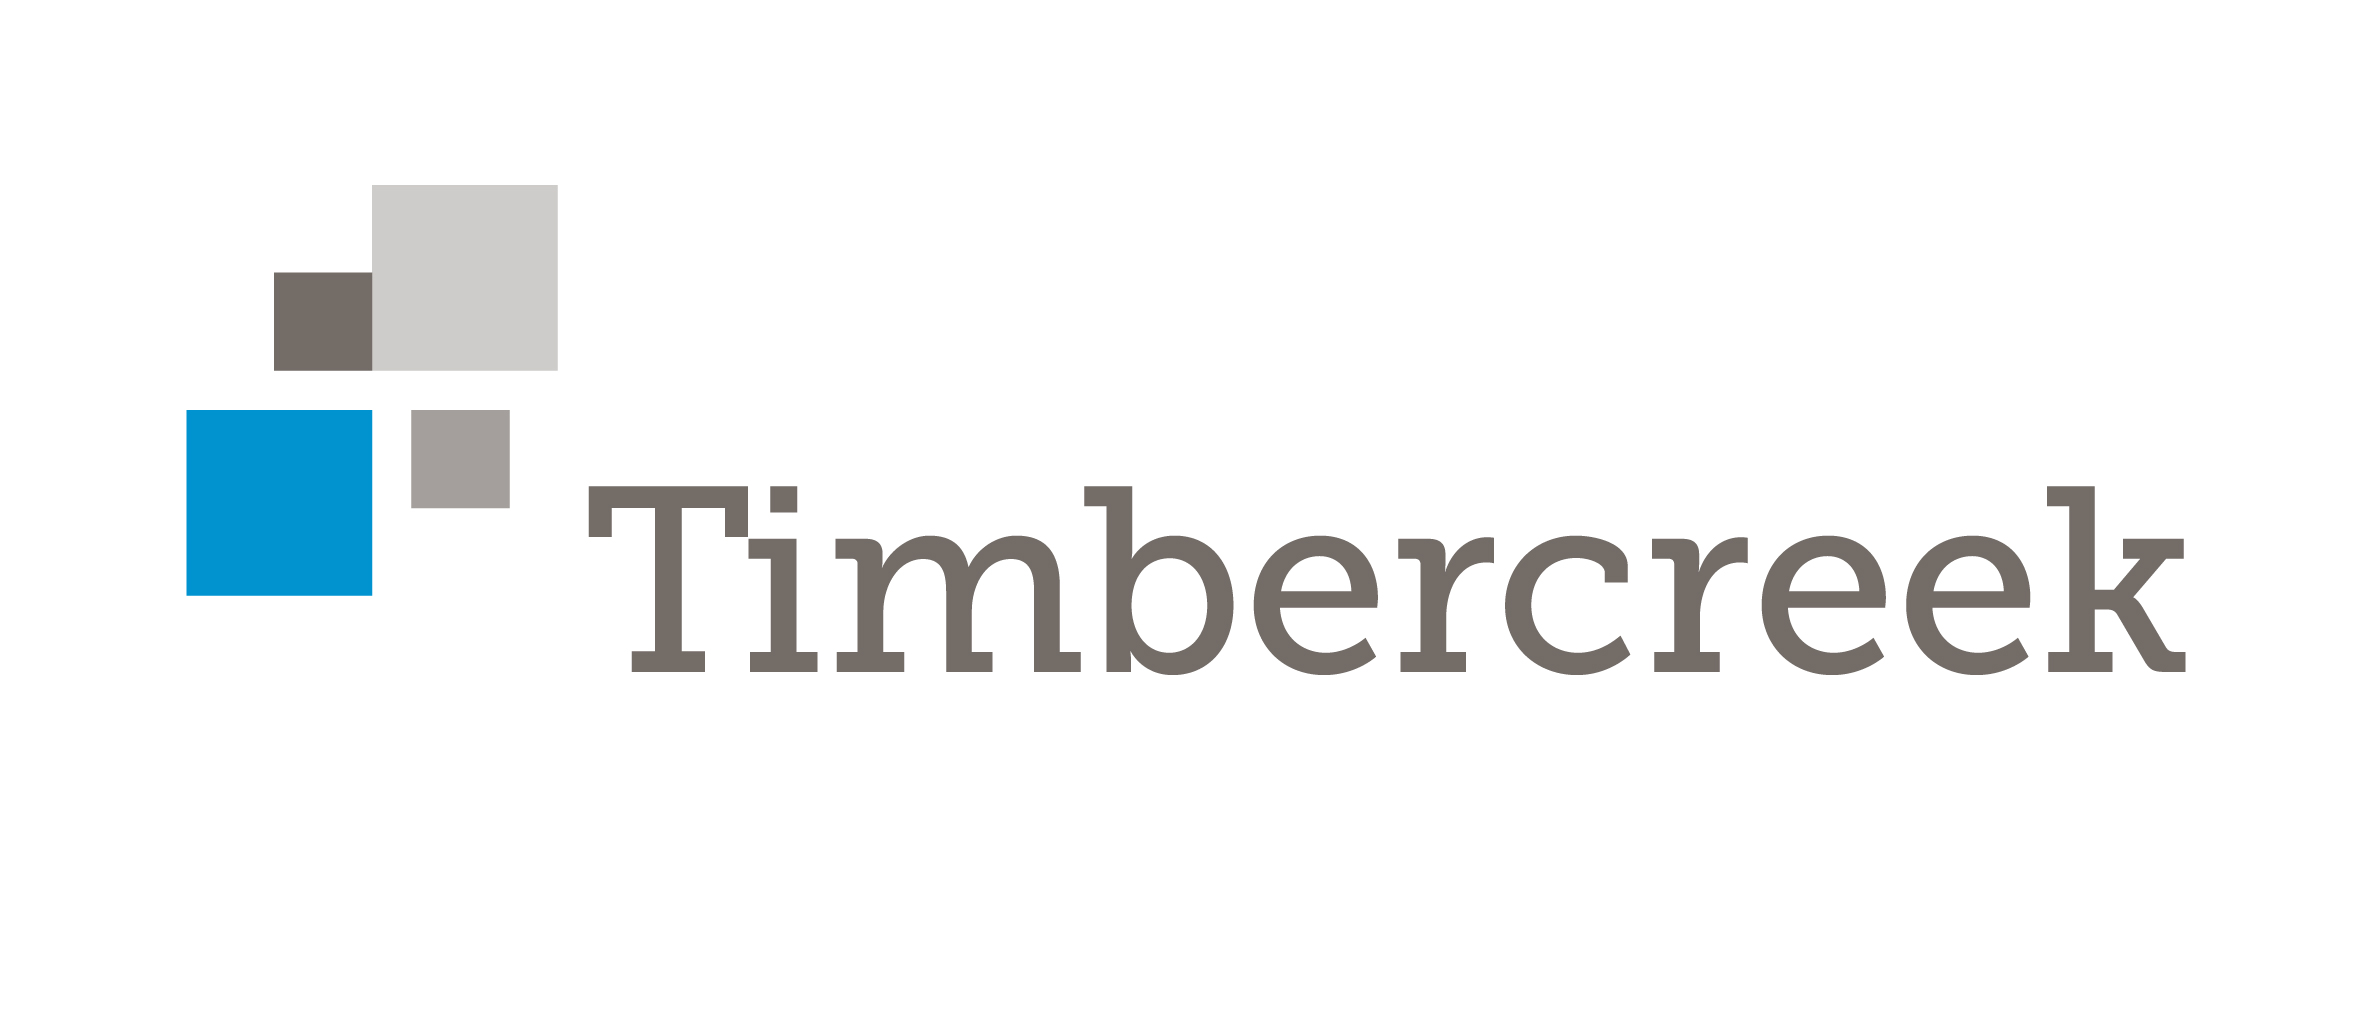 Timbercreek 2020 Global Real Estate Securities Market Outlook: Global REITs to deliver another year of positive returns